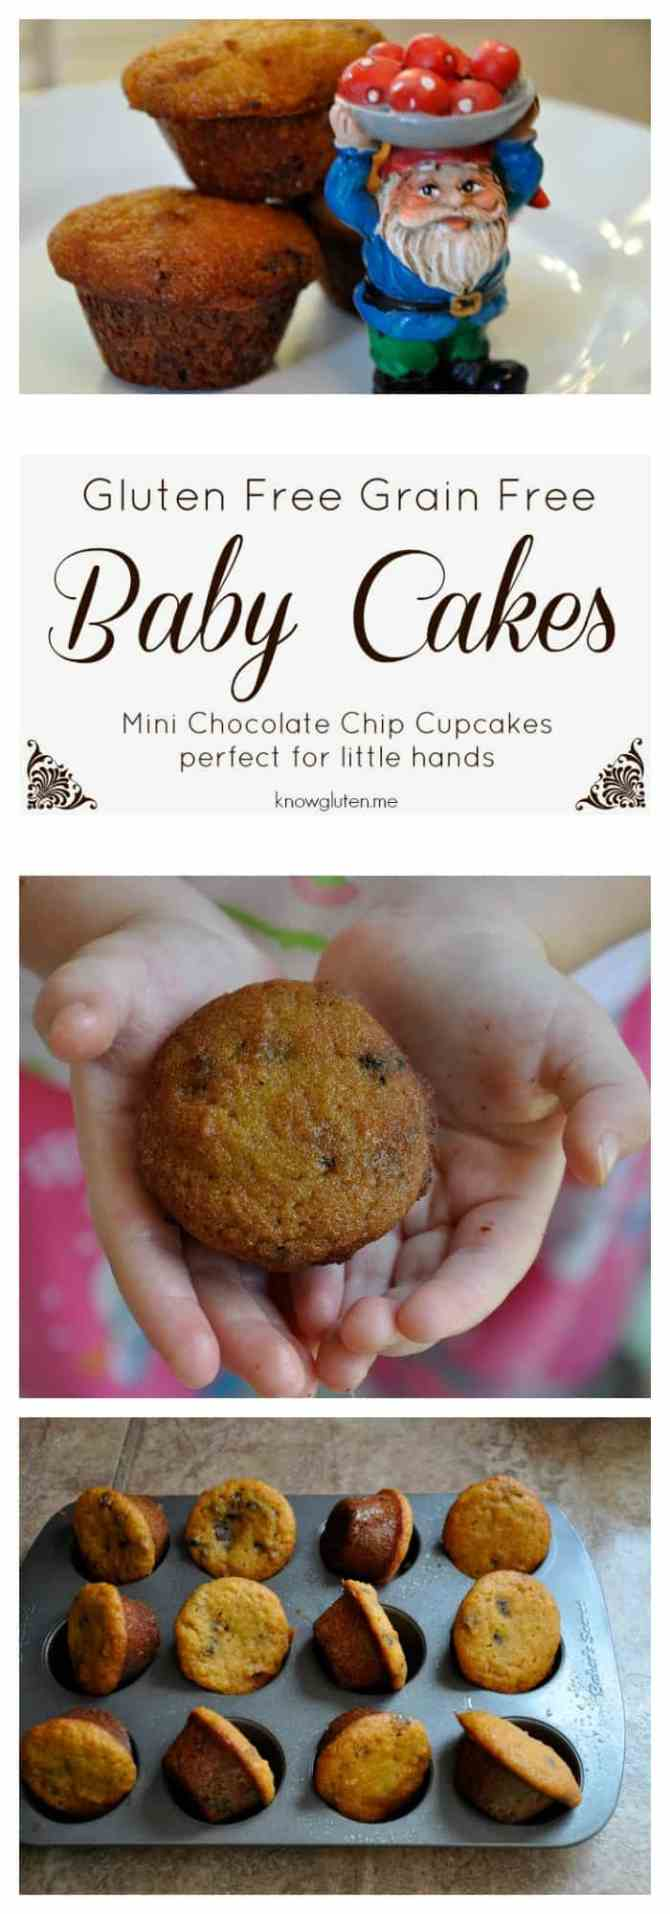 Gluten Free, Grain Free Baby Cakes - mini chocolate chip cupcakes made with coconut flour, perfect for snack time